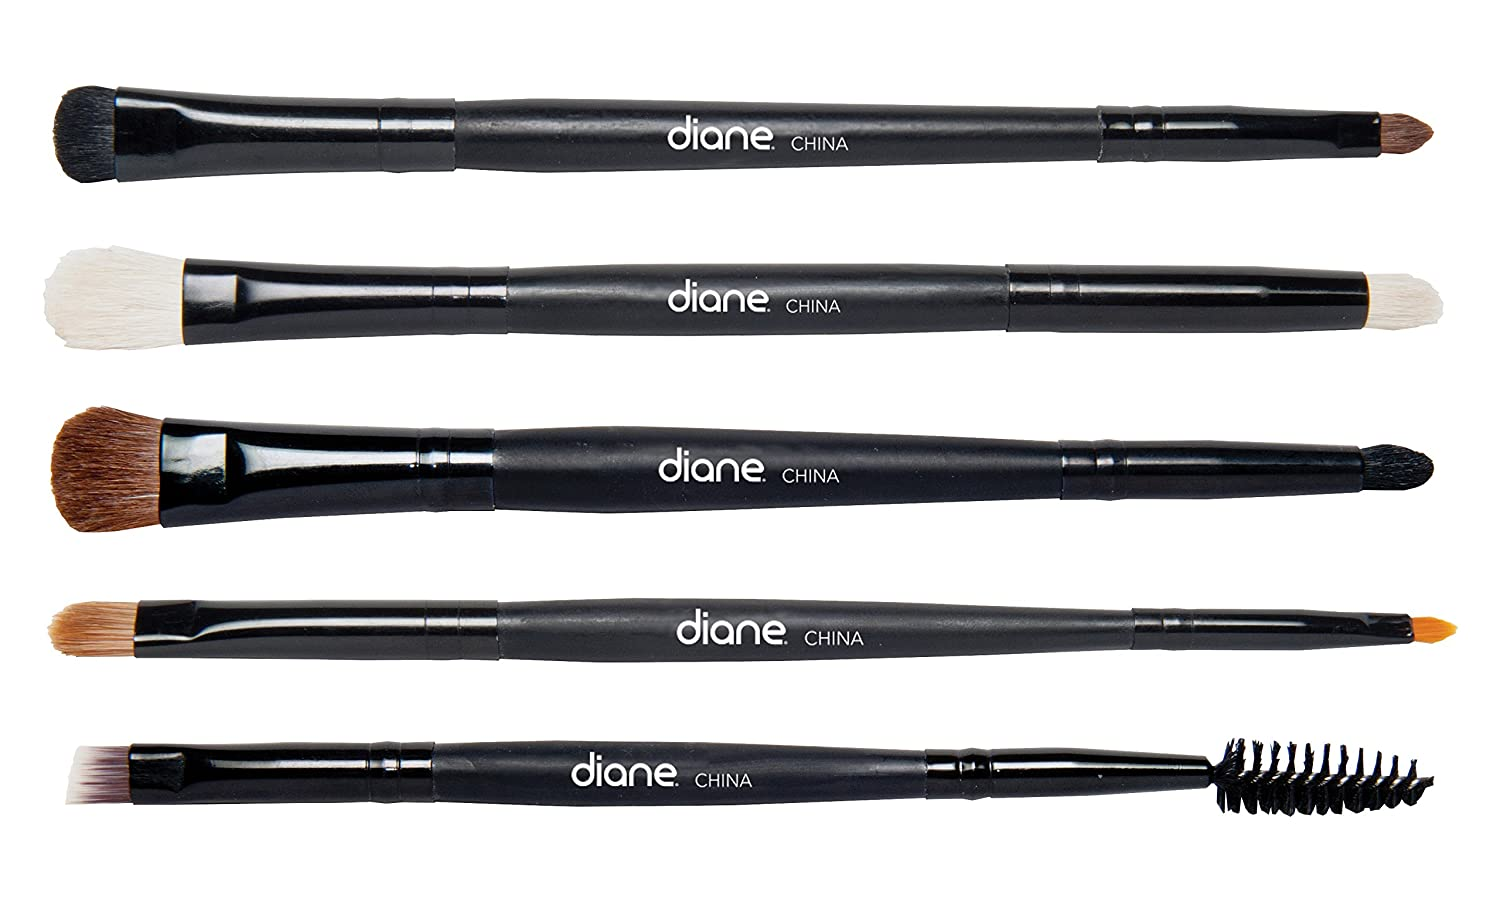 Diane 5Piece Double-Sided Eye Makeup Brush Set